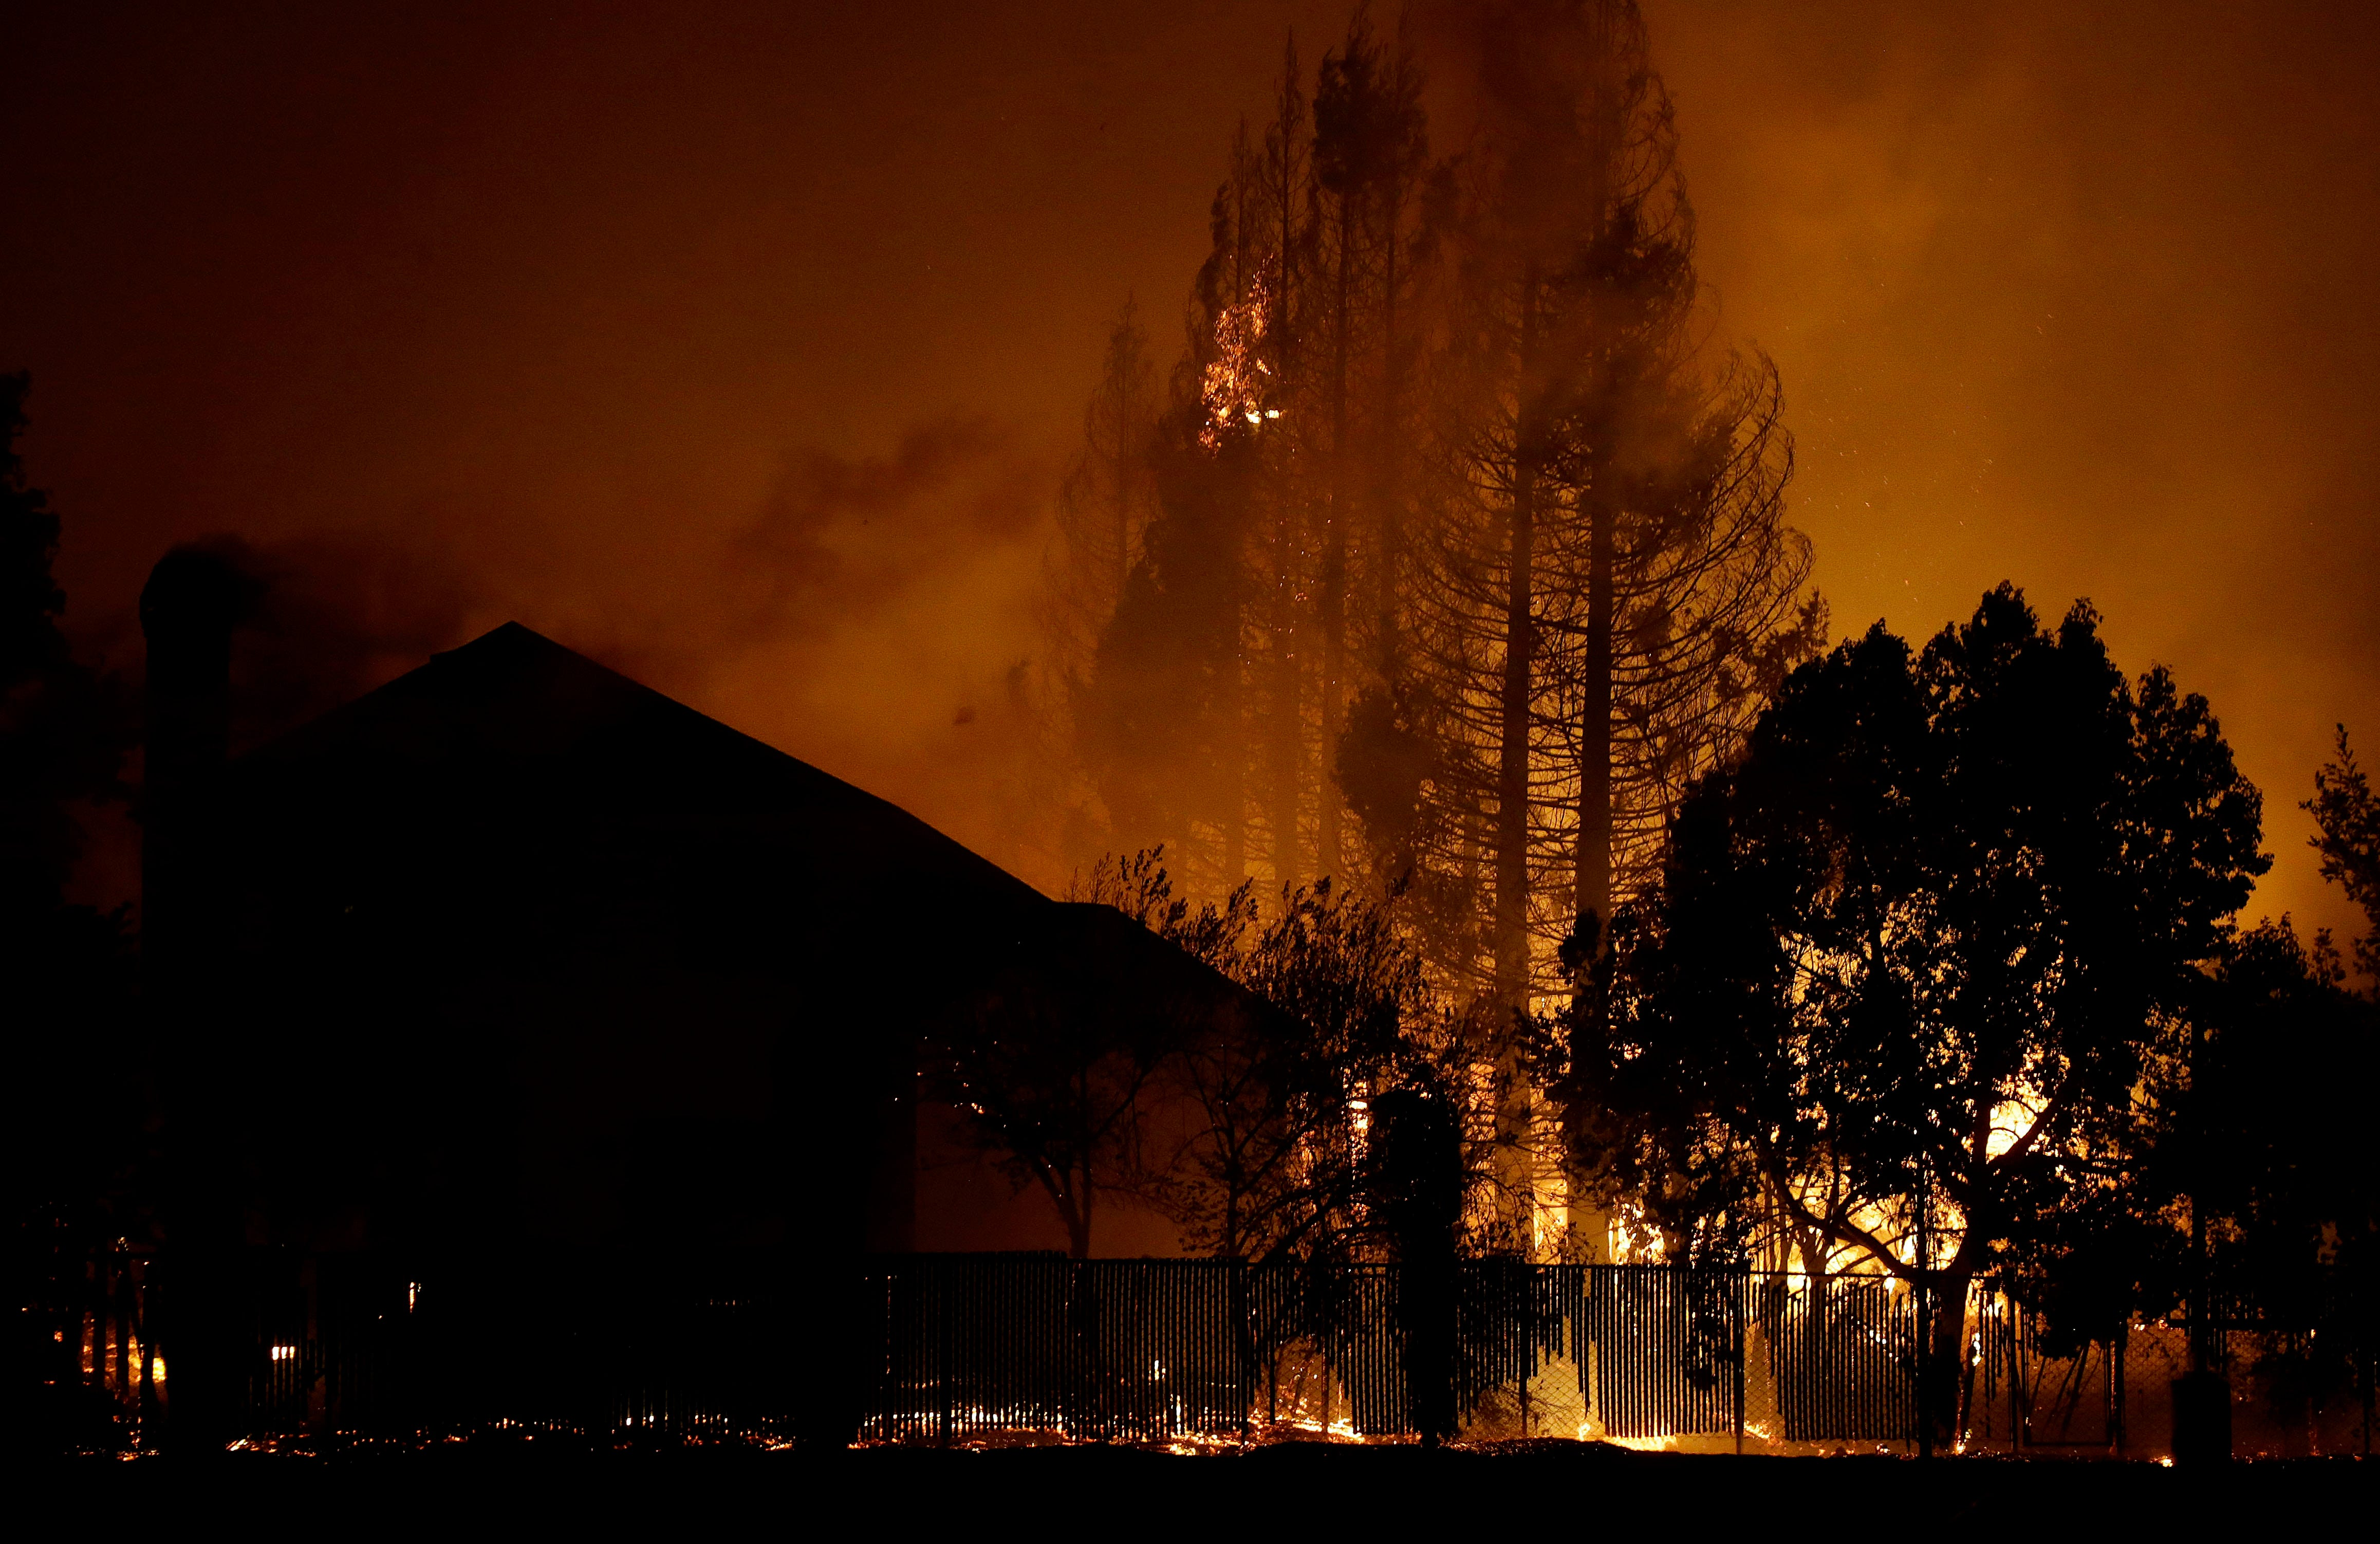 Trees burn behind houses in a residential area in Santa Rosa, Calif., Monday, Oct. 9, 2017.